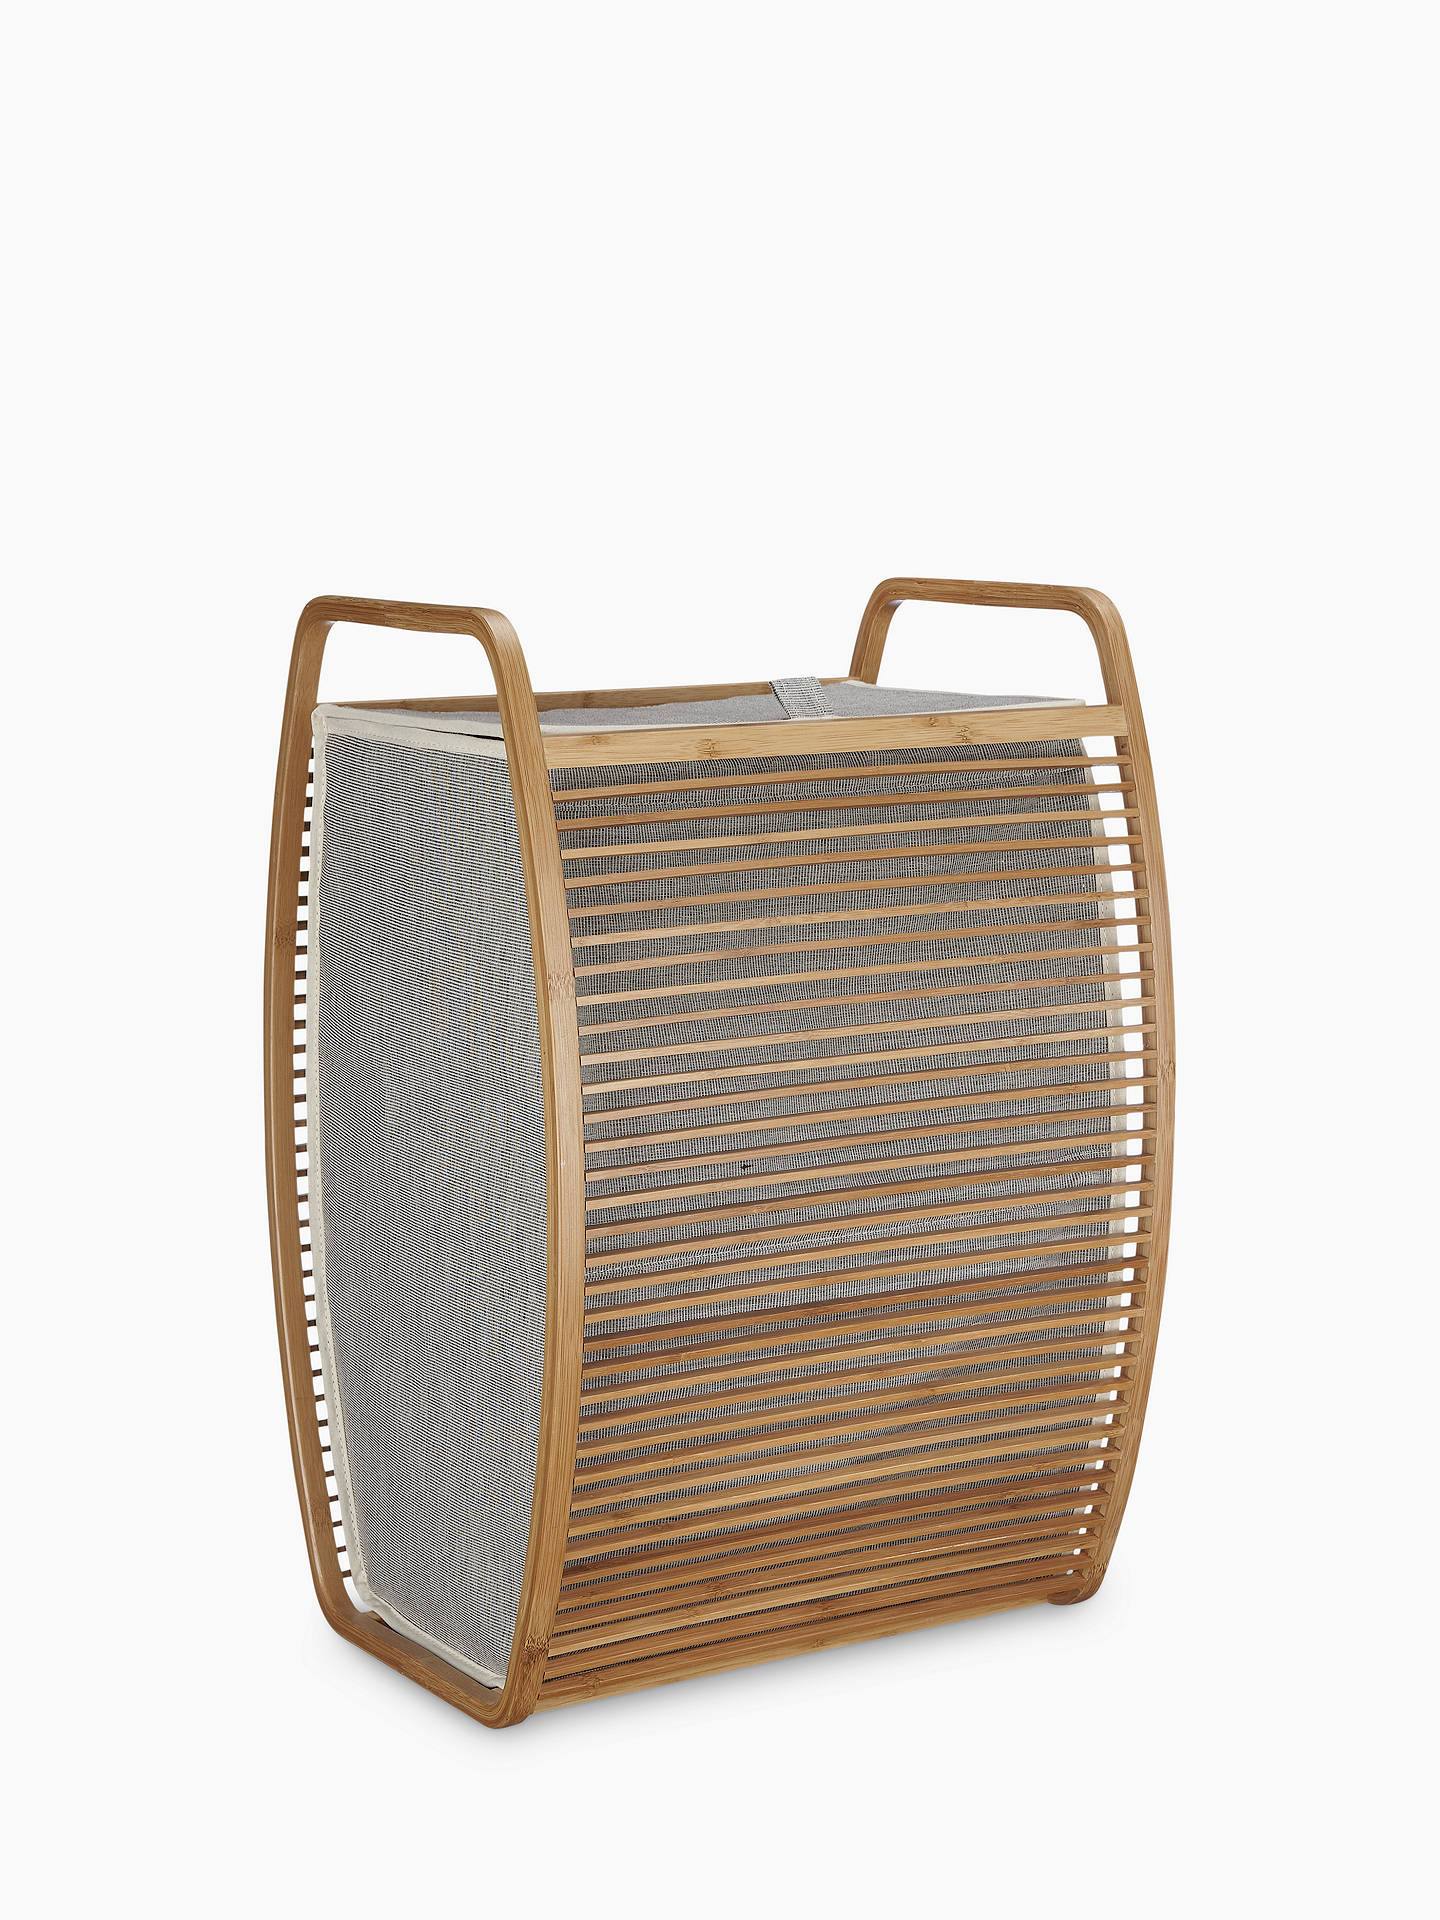 BuyJohn Lewis & Partners Fusion Laundry Hamper Online at johnlewis.com